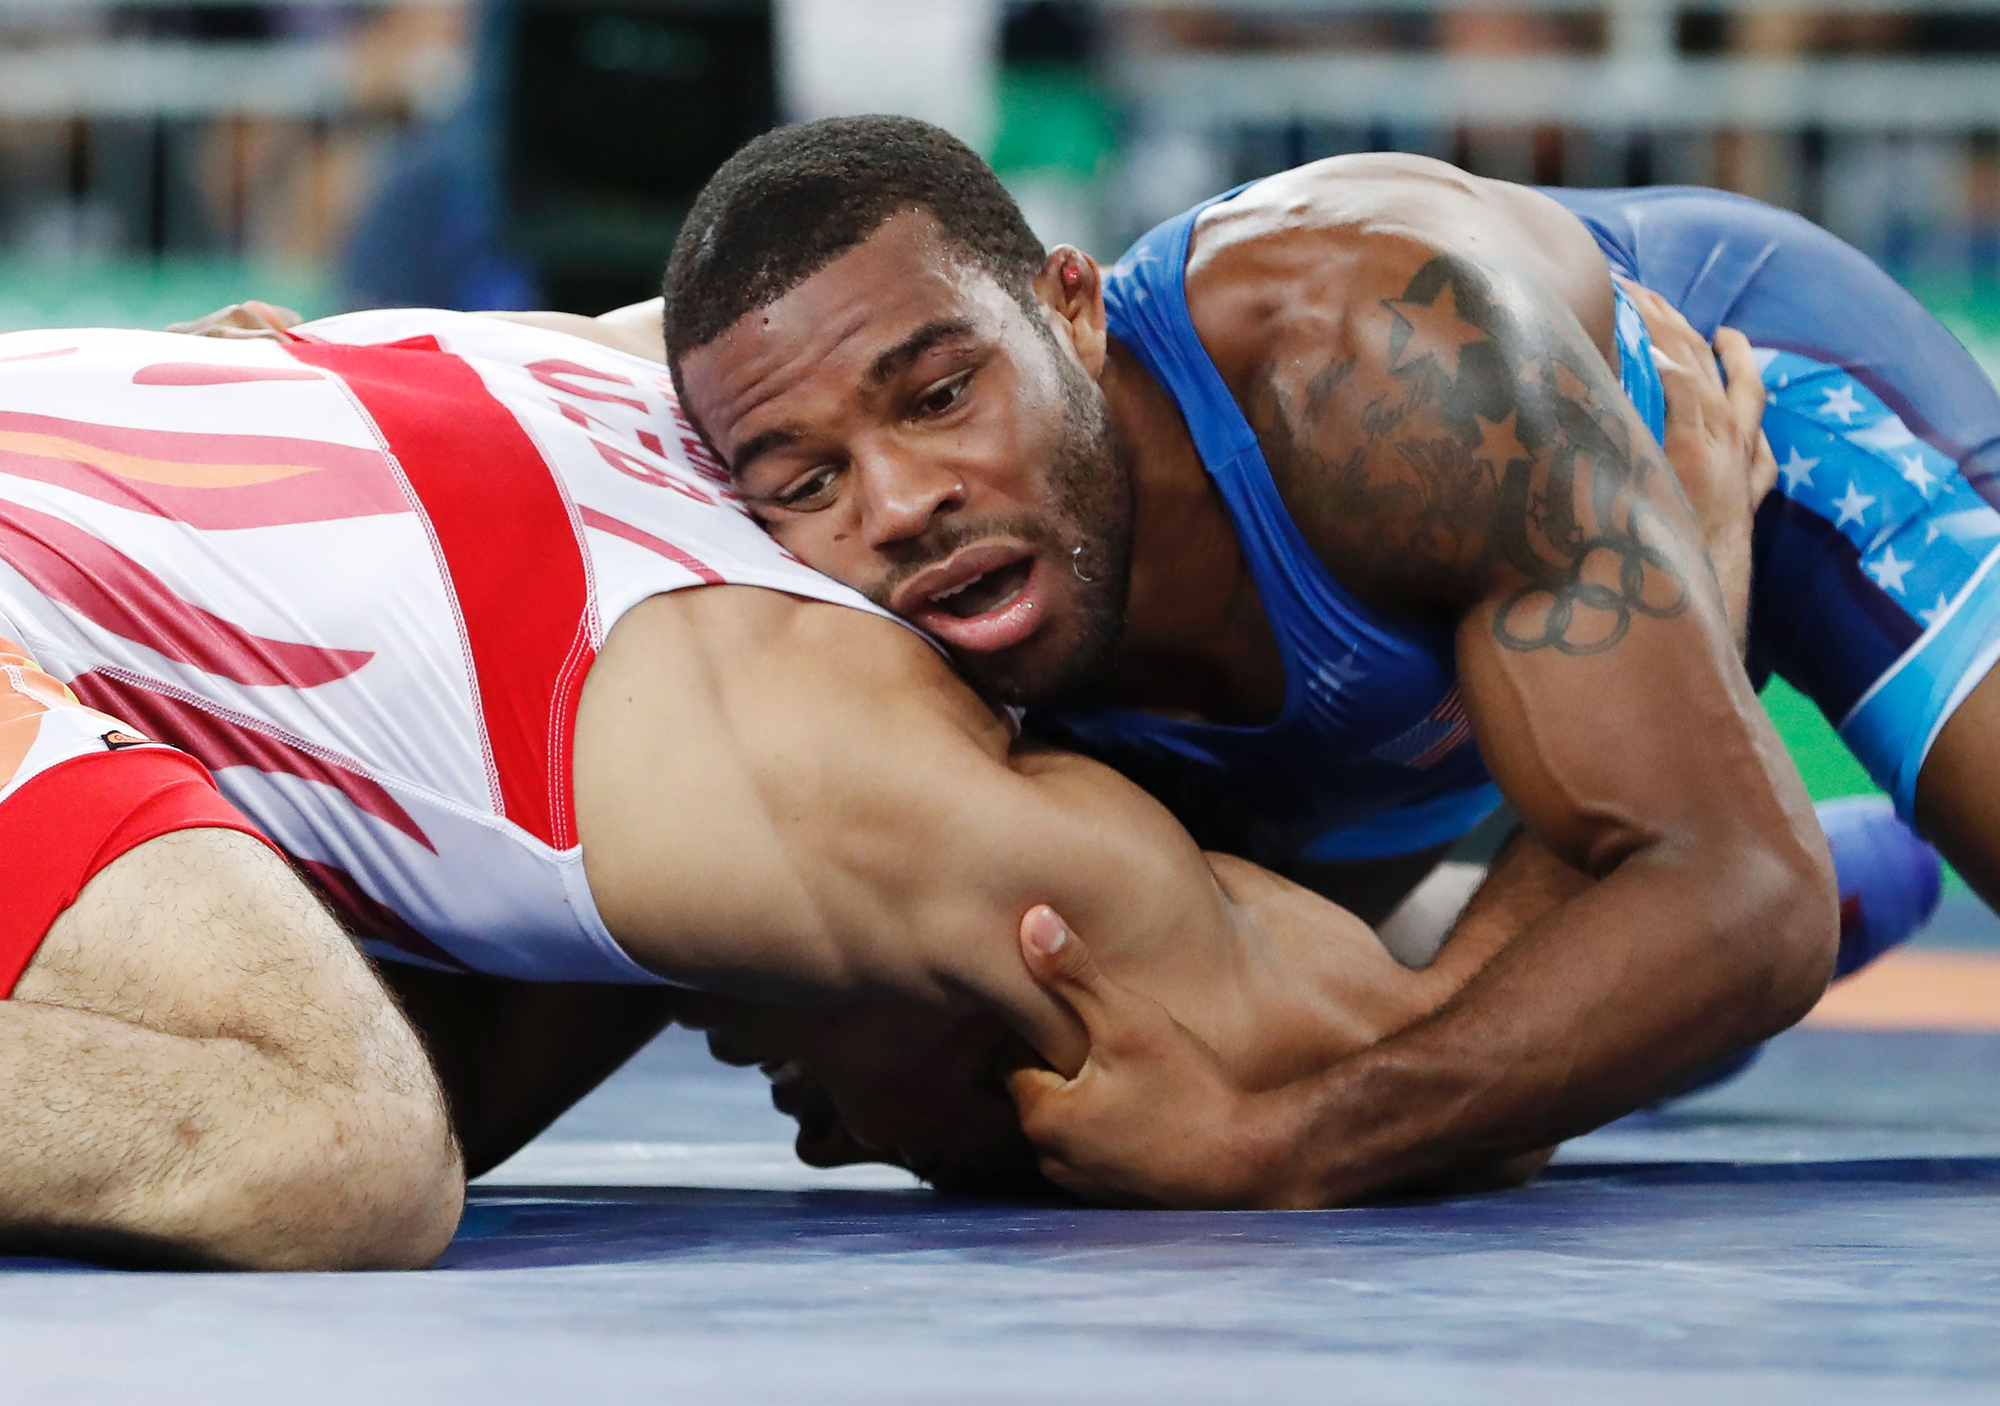 Uzbekistan's Bekzod Abdurakhmonov (red) wrestles with USA's Jordan Ernest Burroughs in their men's 74kg freestyle repechage round 2 match on August 19, 2016, during the wrestling event of the Rio 2016 Olympic Games at the Carioca Arena 2 in Rio de Janeiro.